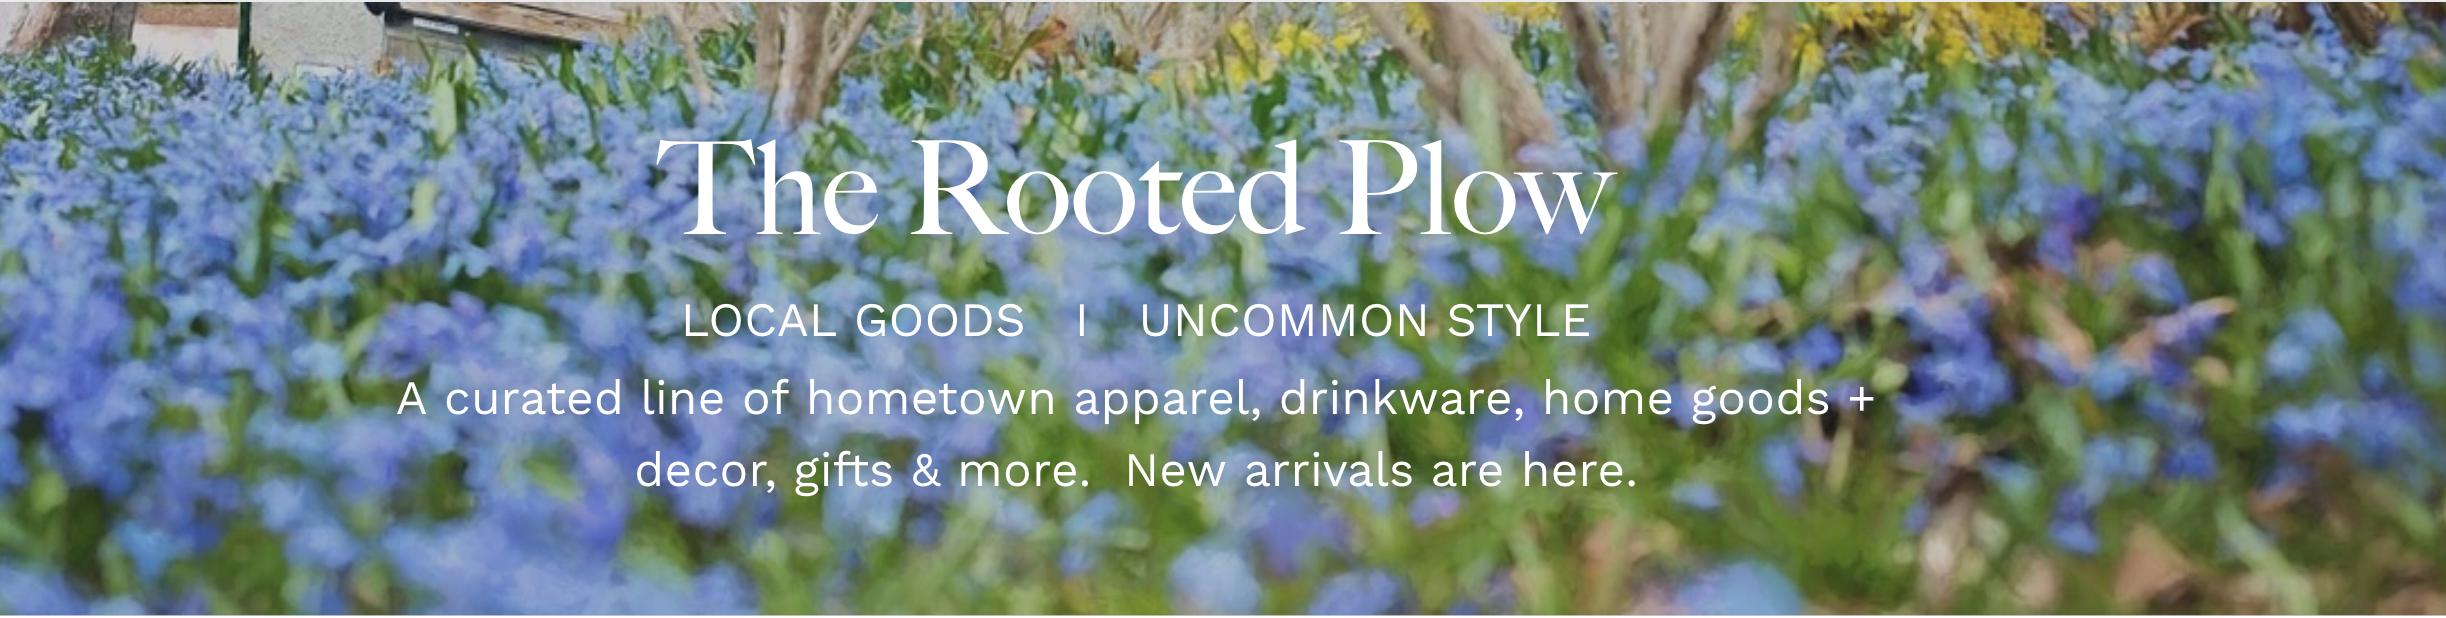 The Rooted Plow